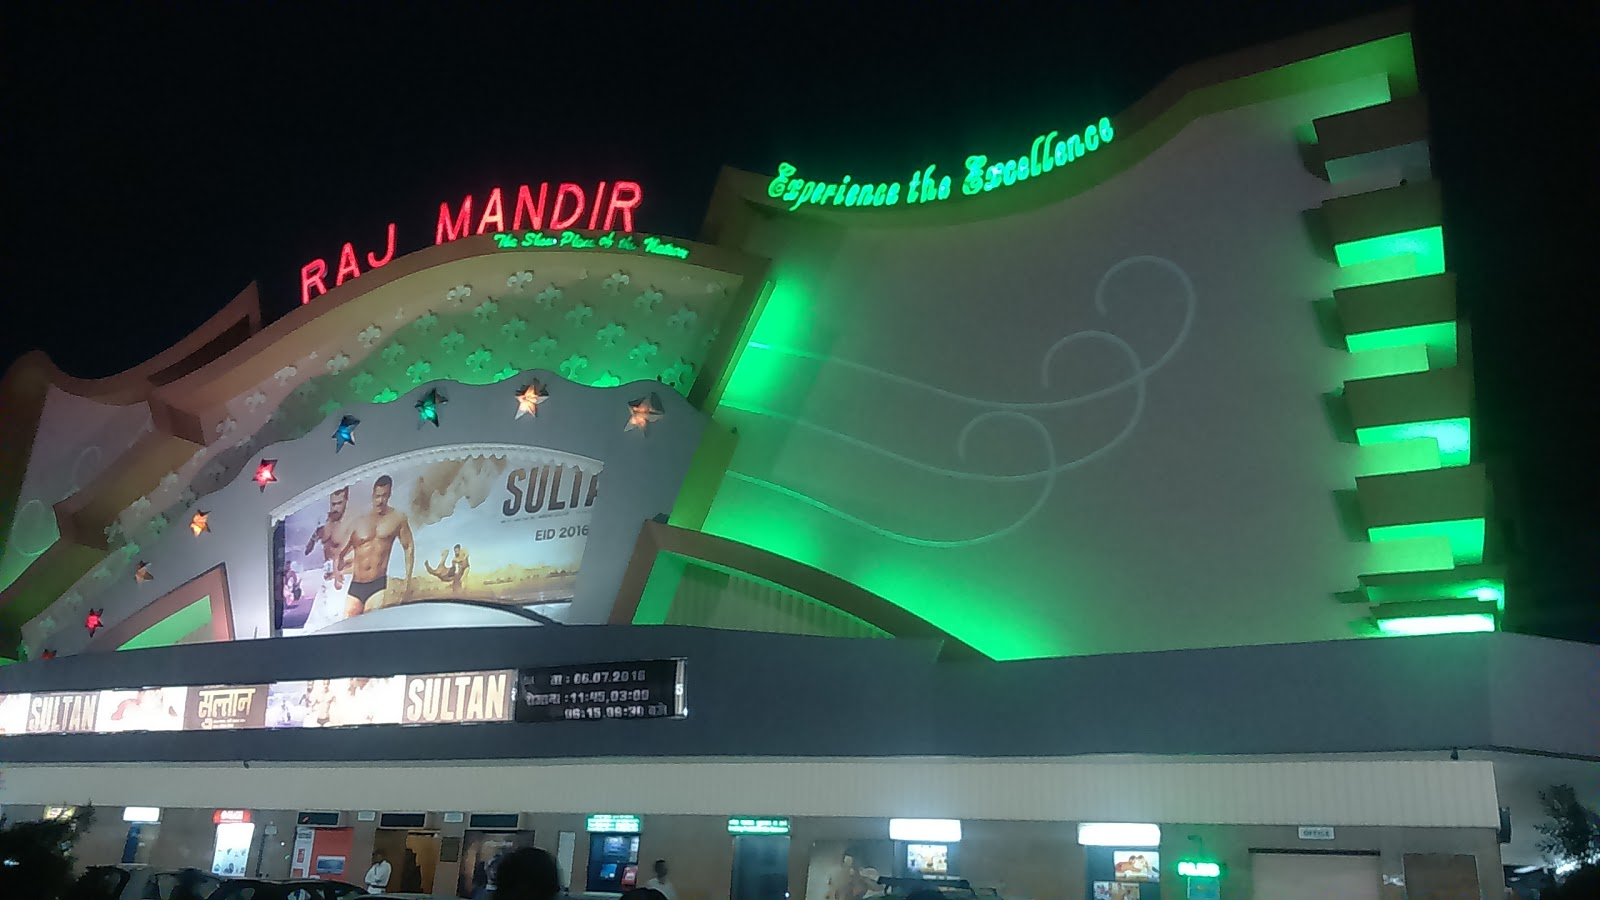 Raj Mandir Cinema